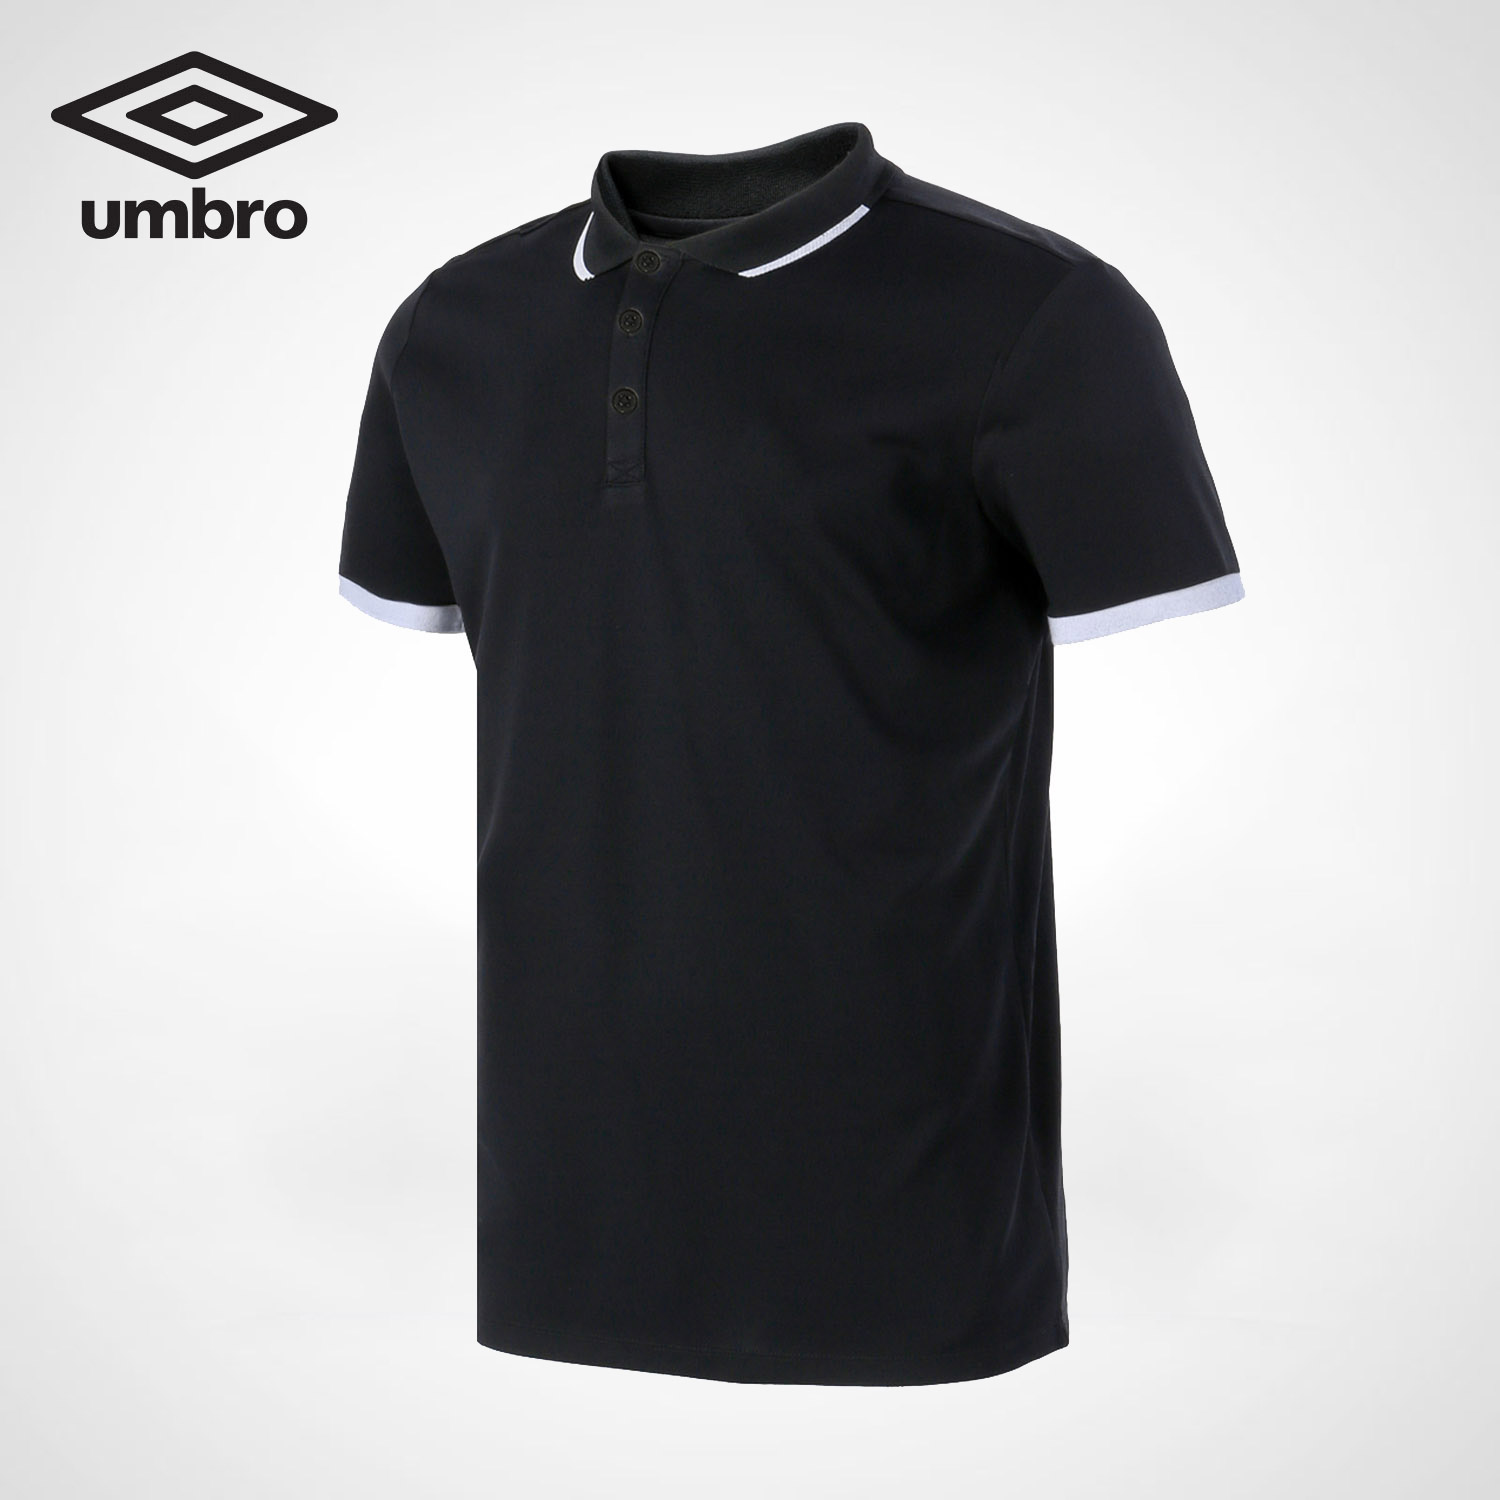 Umbro New Men Leisure Short Sleeved Polo Shirt Sports Style Breathable UO182AP2601